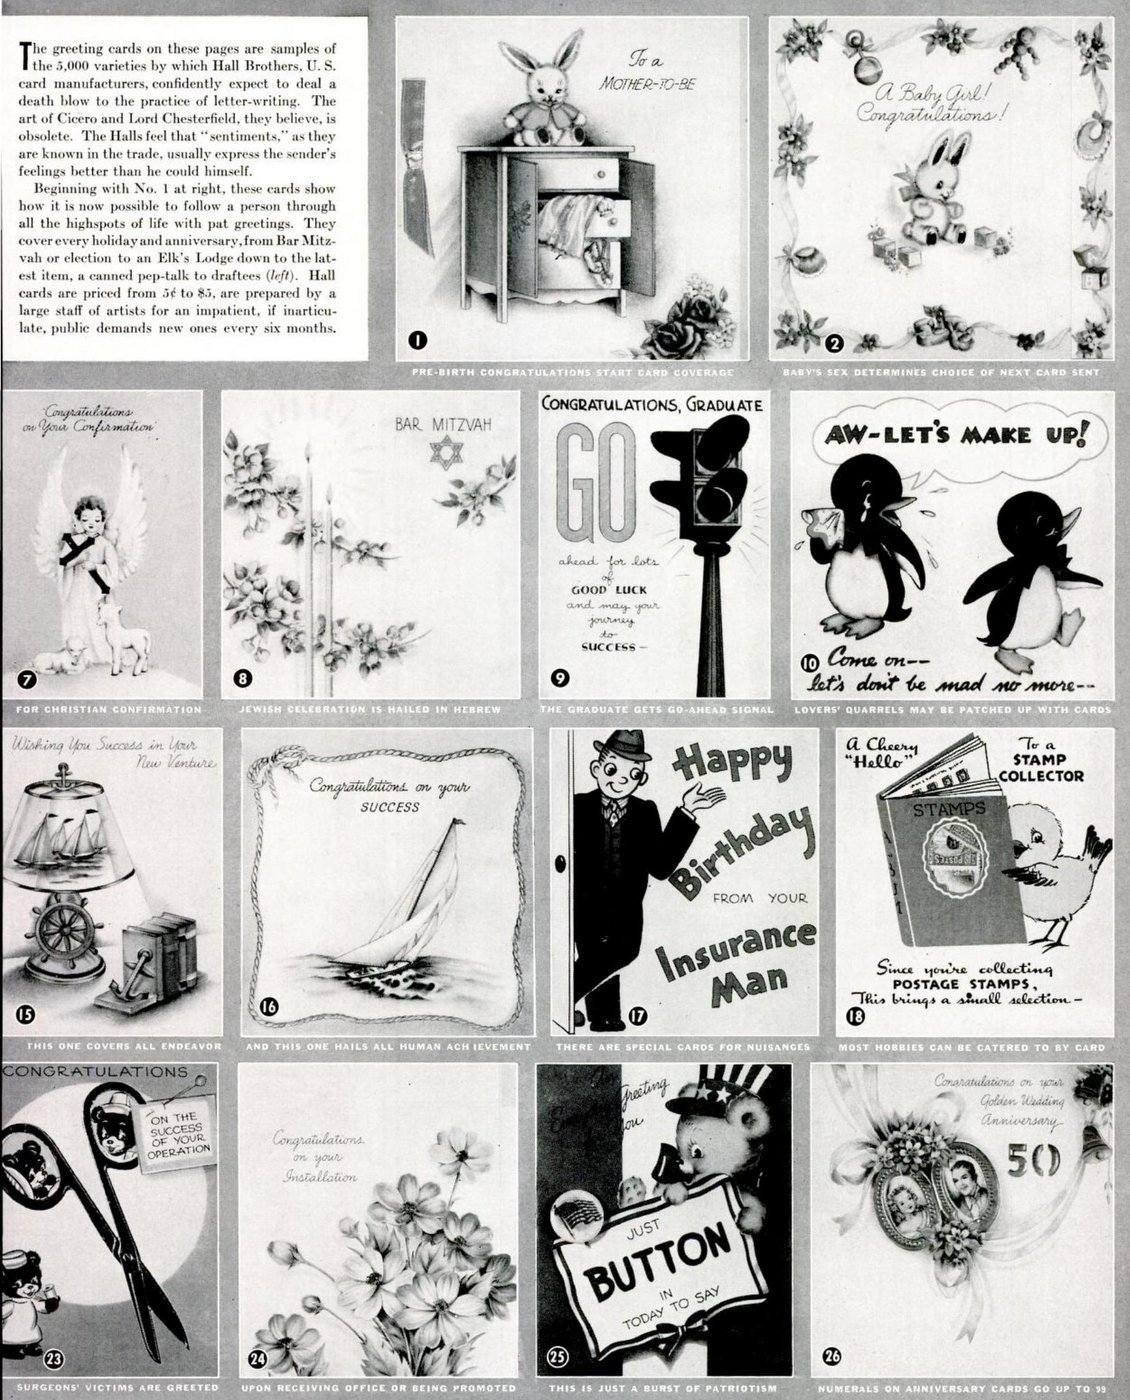 Vintage greeting cards from 1941 B